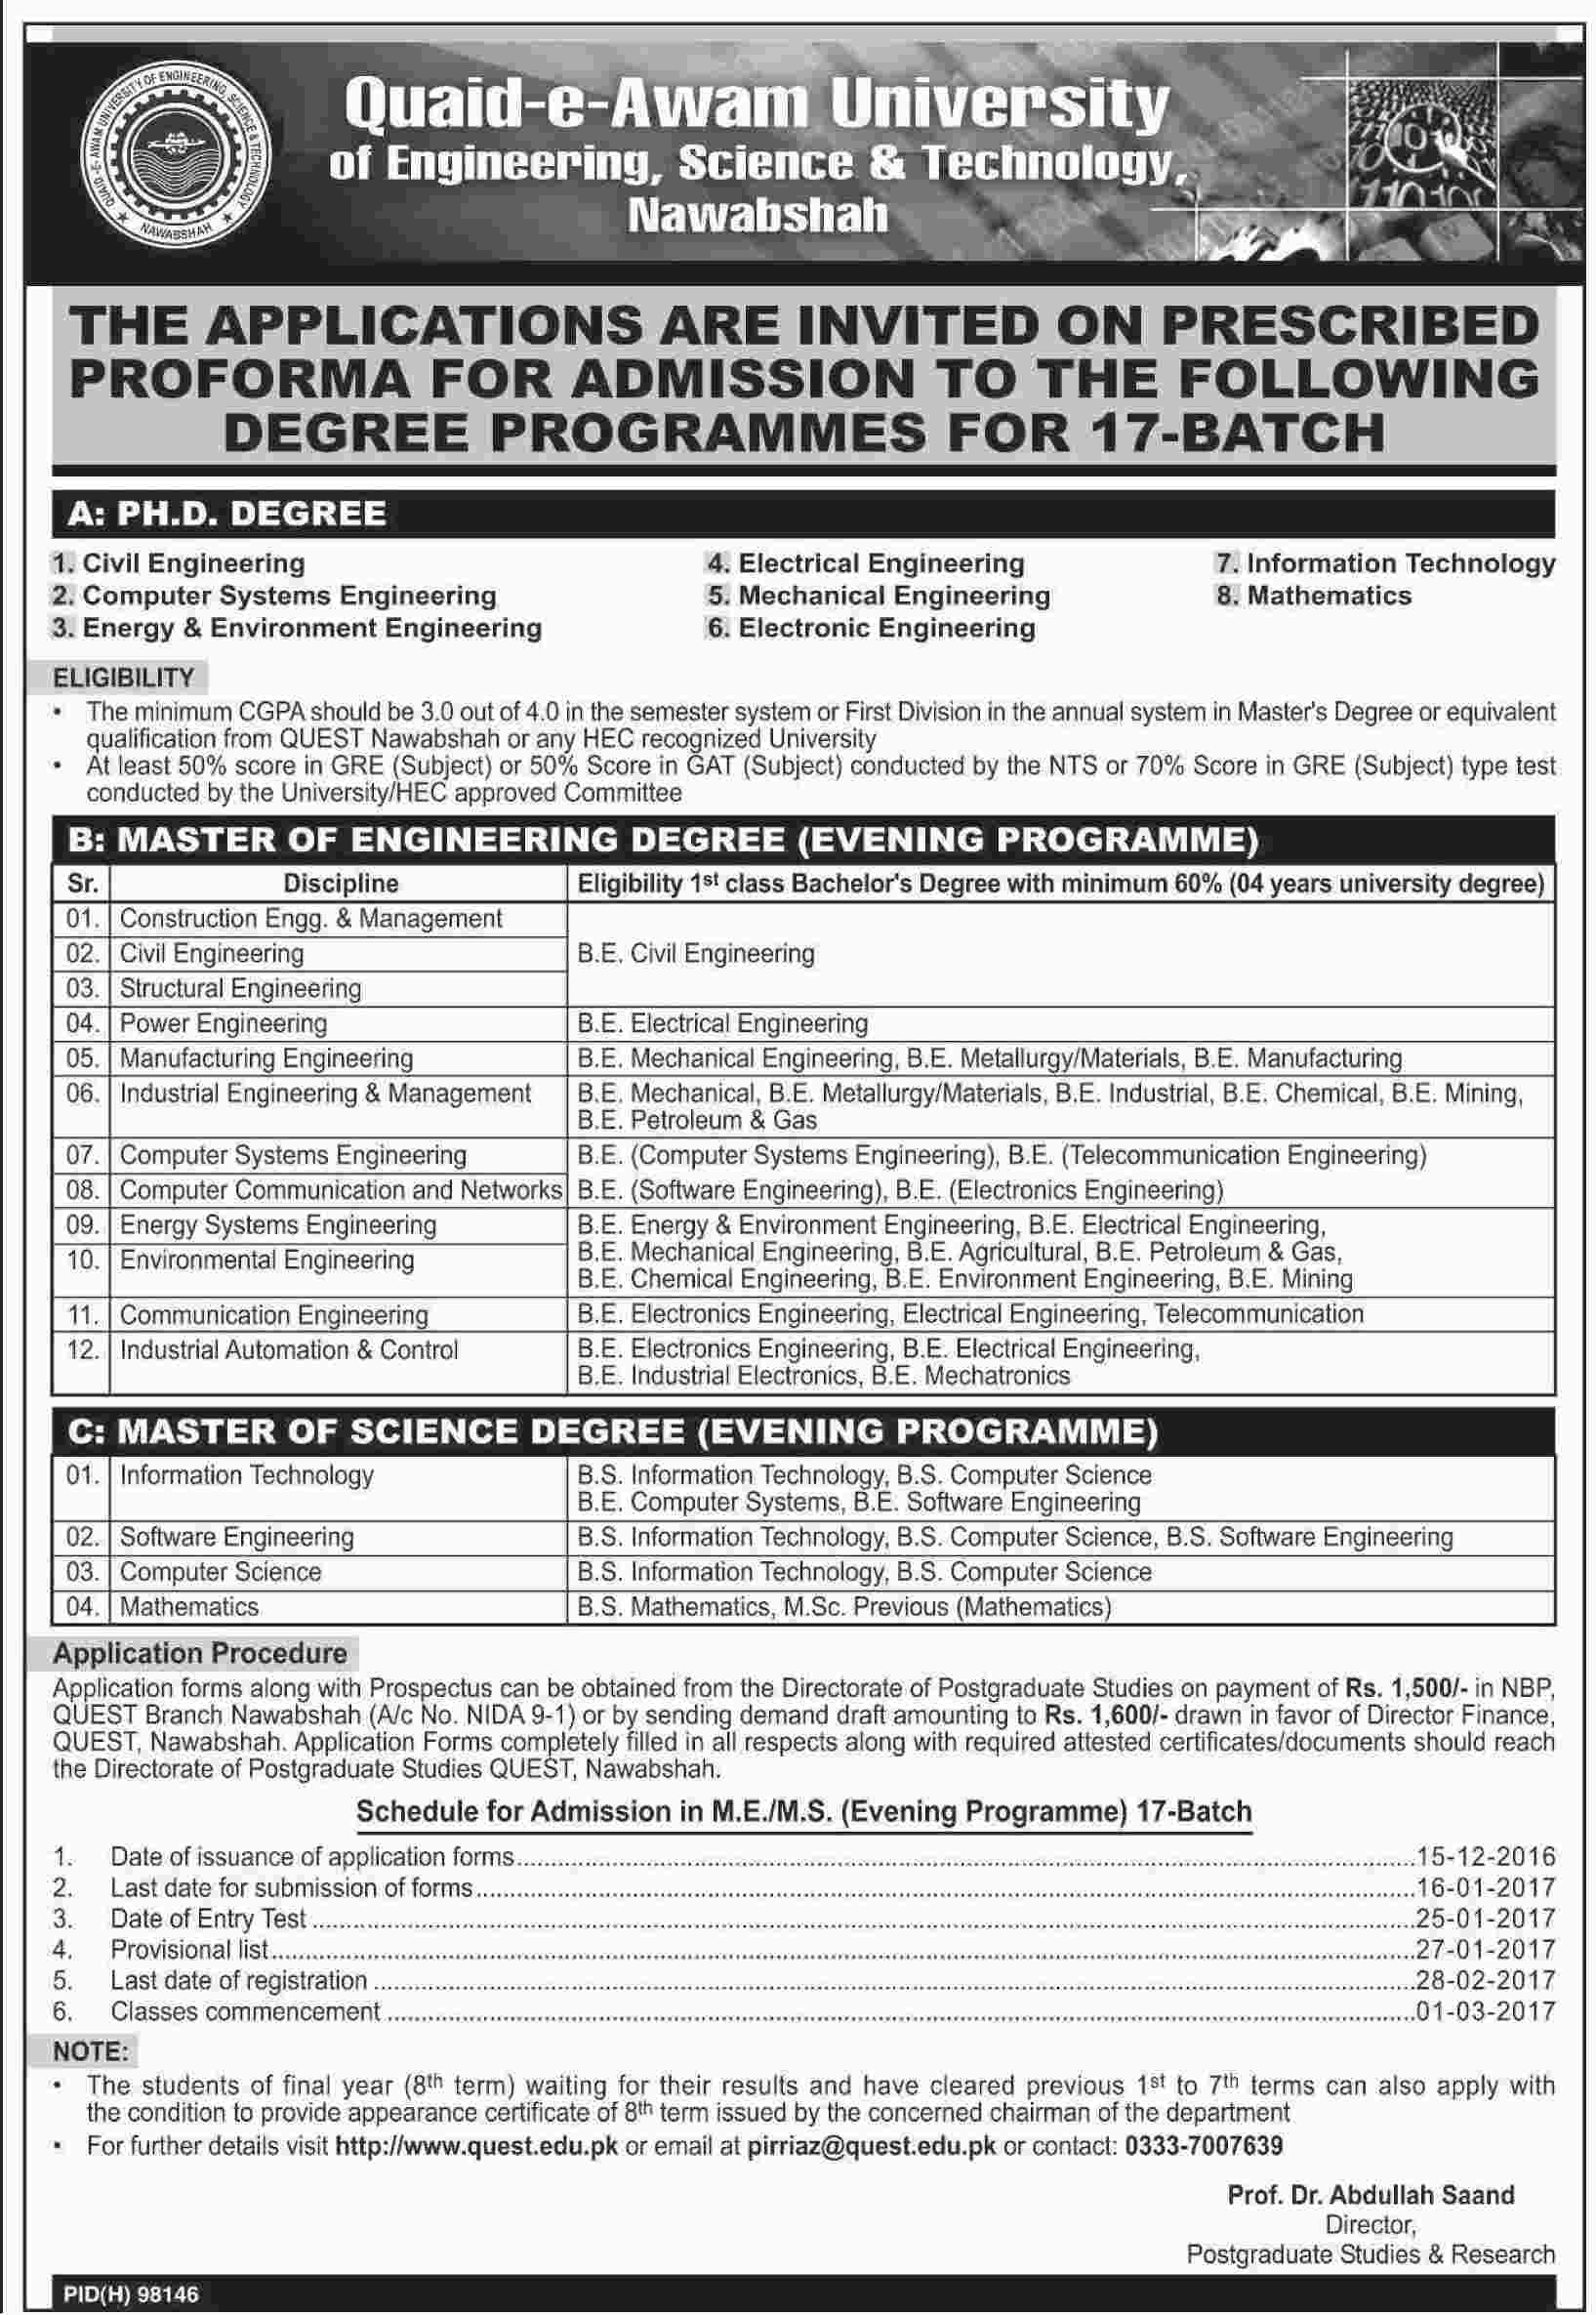 QUEST Nawabshah Admission 2016-17 Form Entry Test Date EligibilityQUEST Nawabshah Admission 2016-17 Form Entry Test Date Eligibility